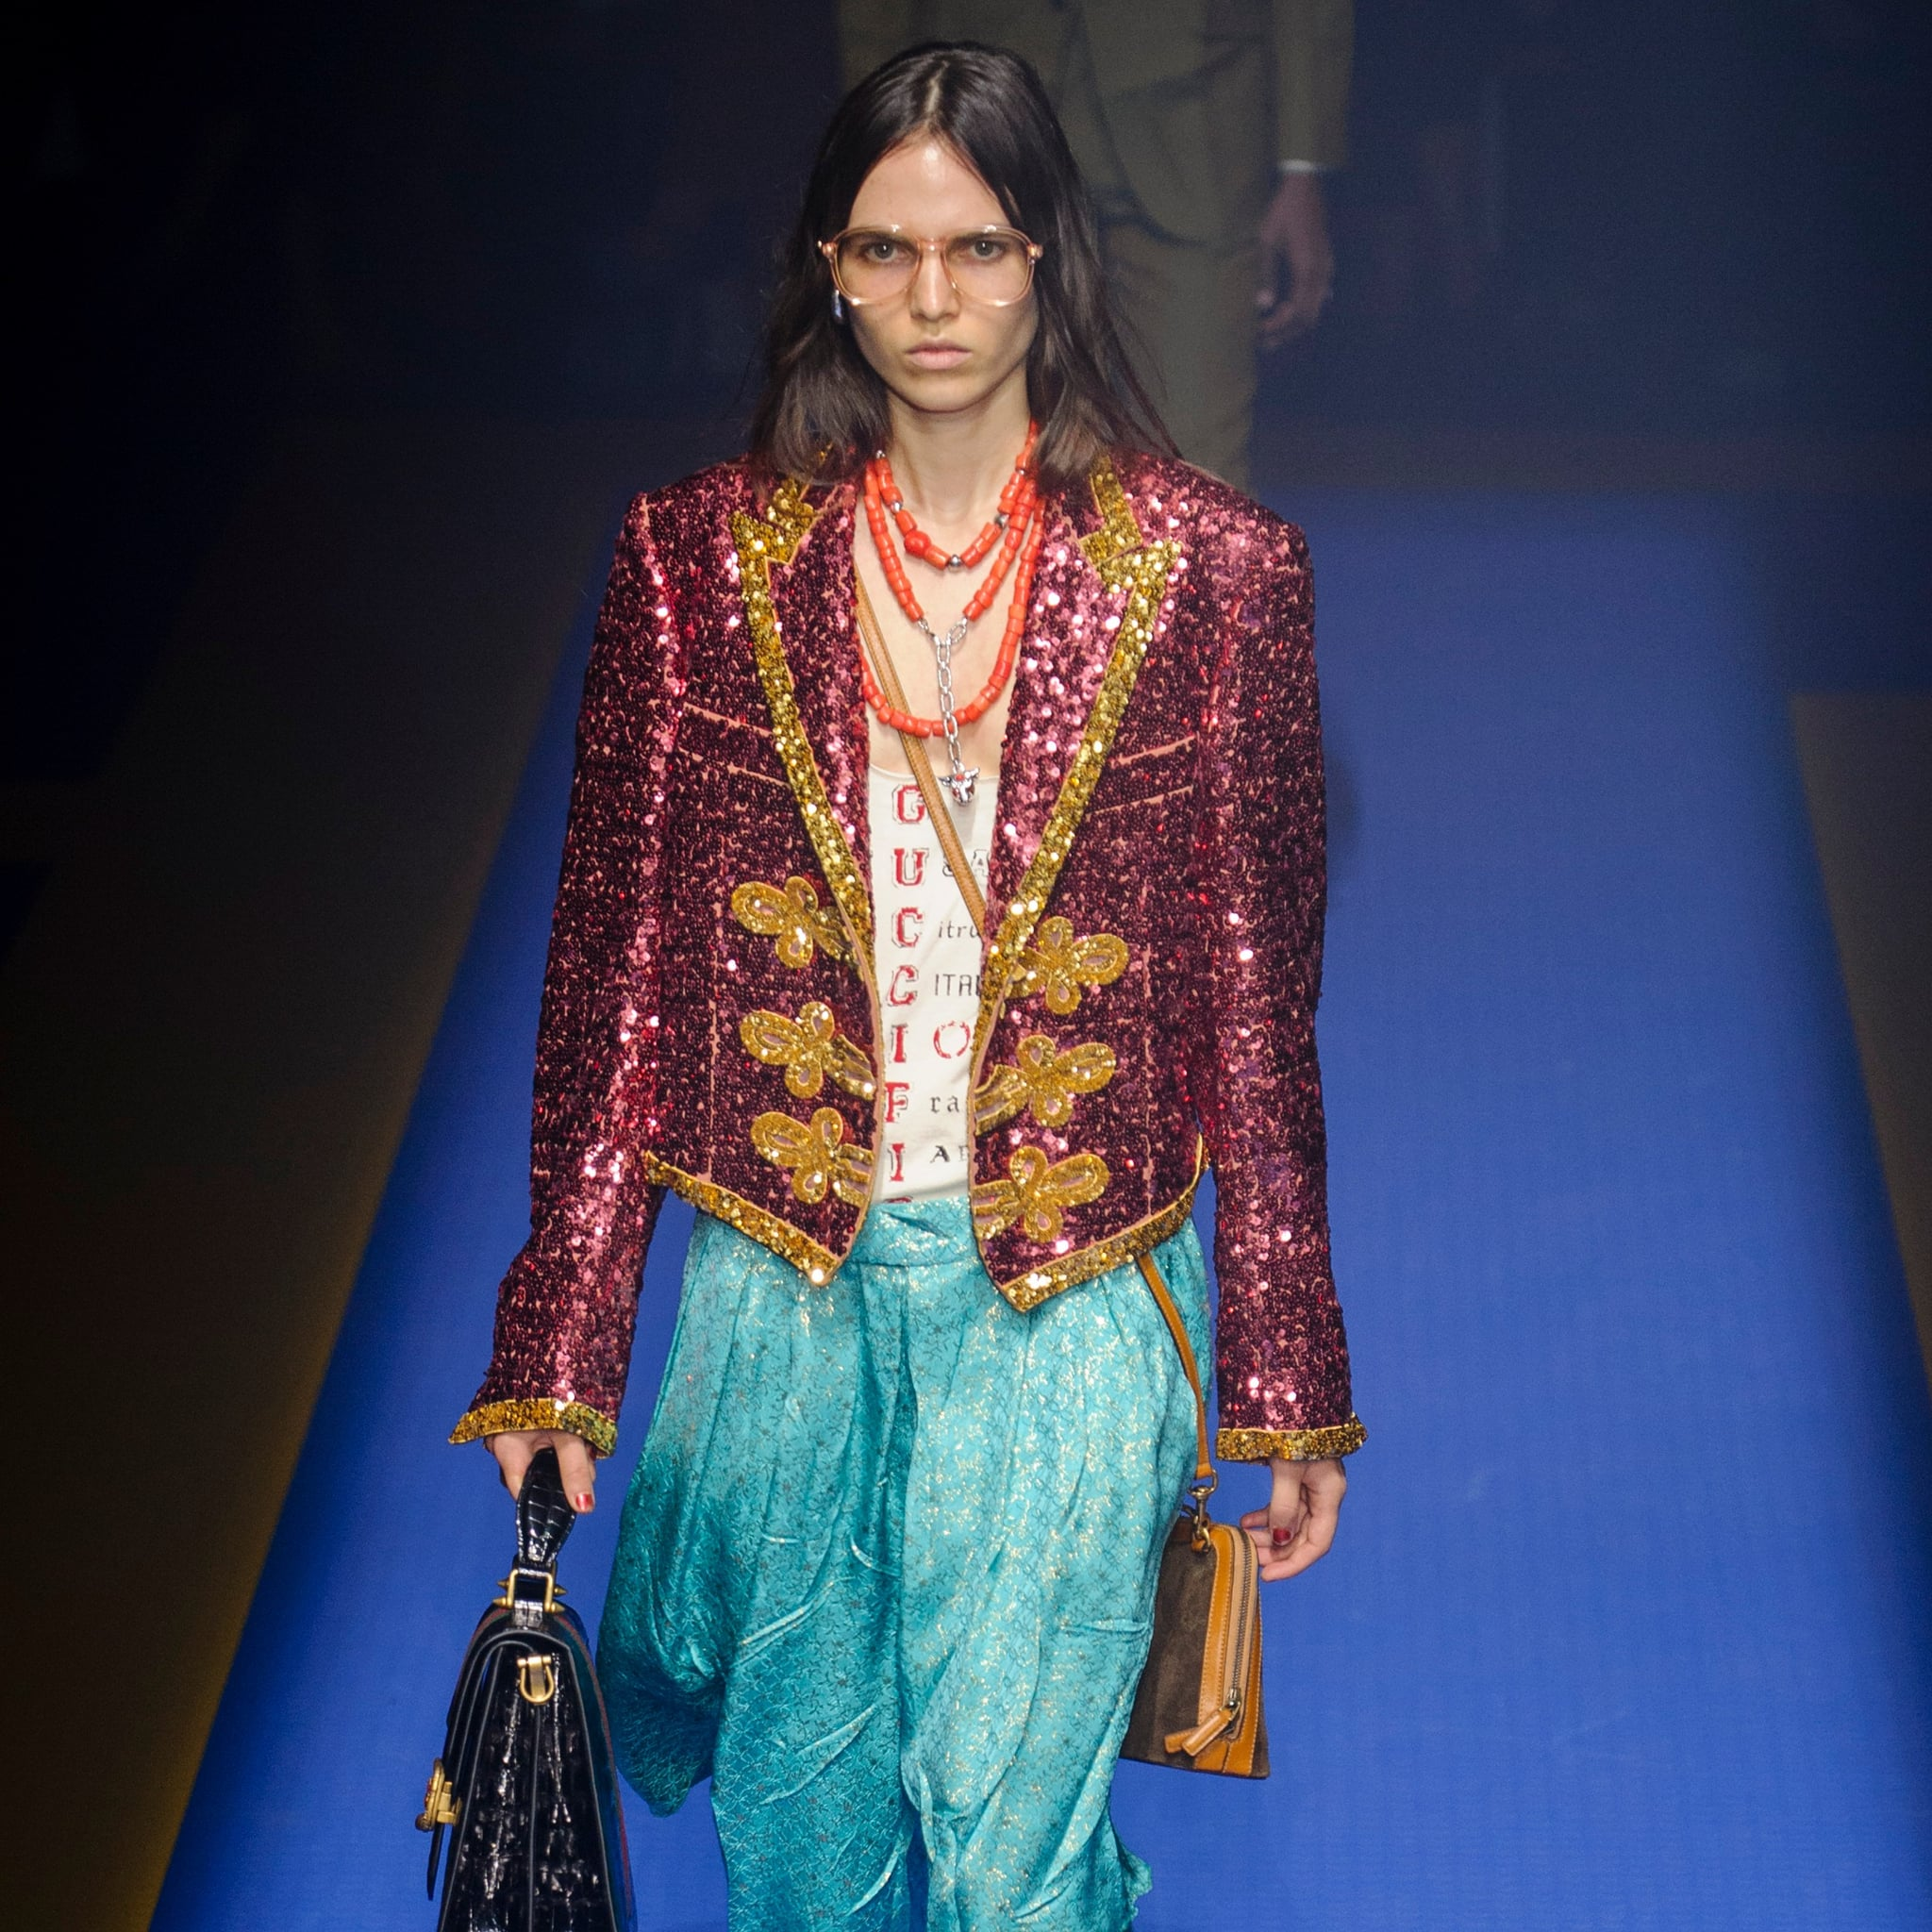 2be41a0a0 Gucci Spring Summer 2018 Collection Pictures | POPSUGAR Fashion ...